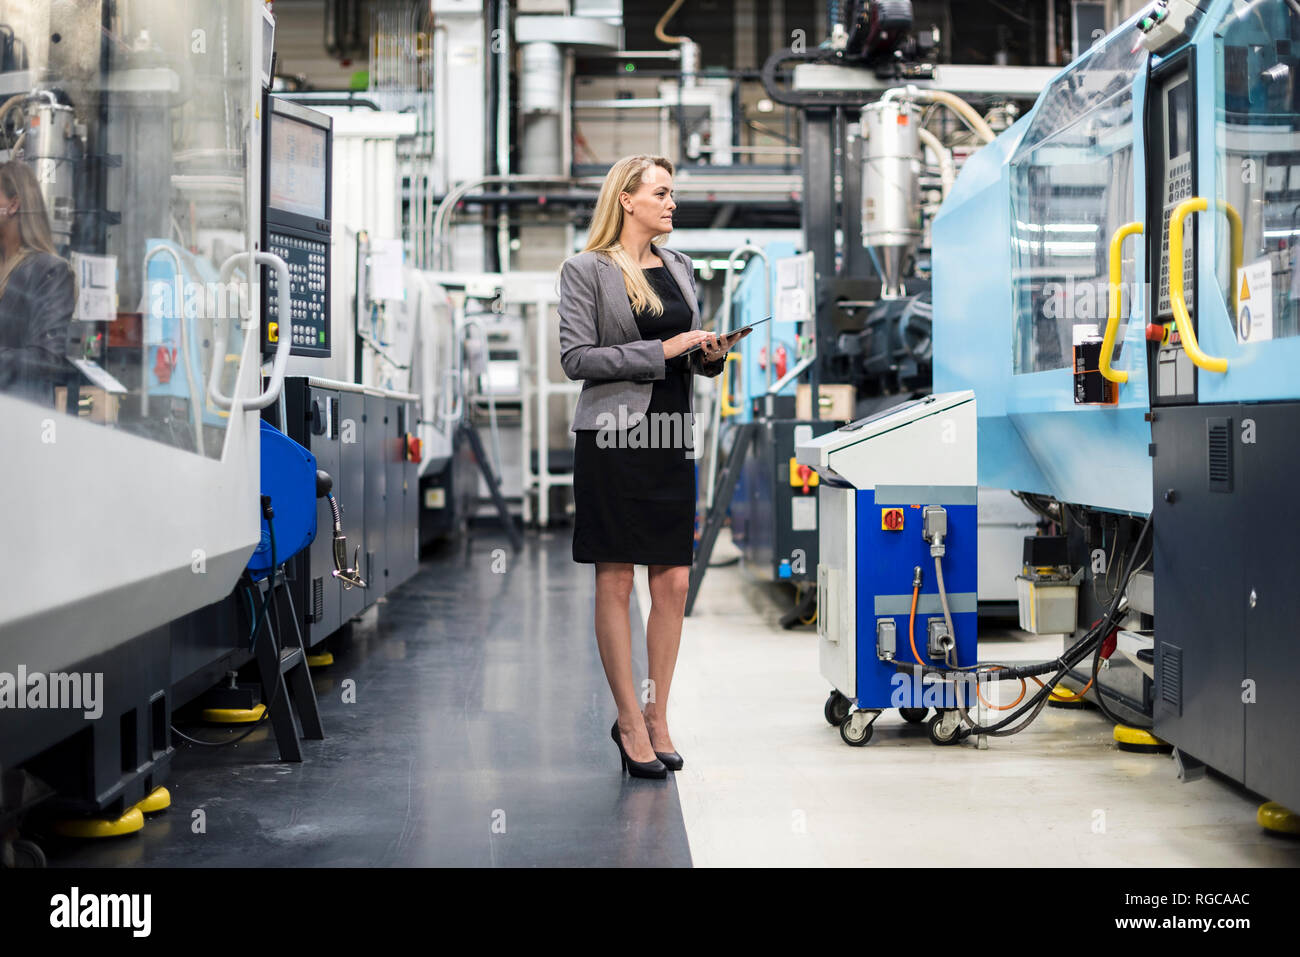 Woman using tablet at machine in factory shop floor Stock Photo